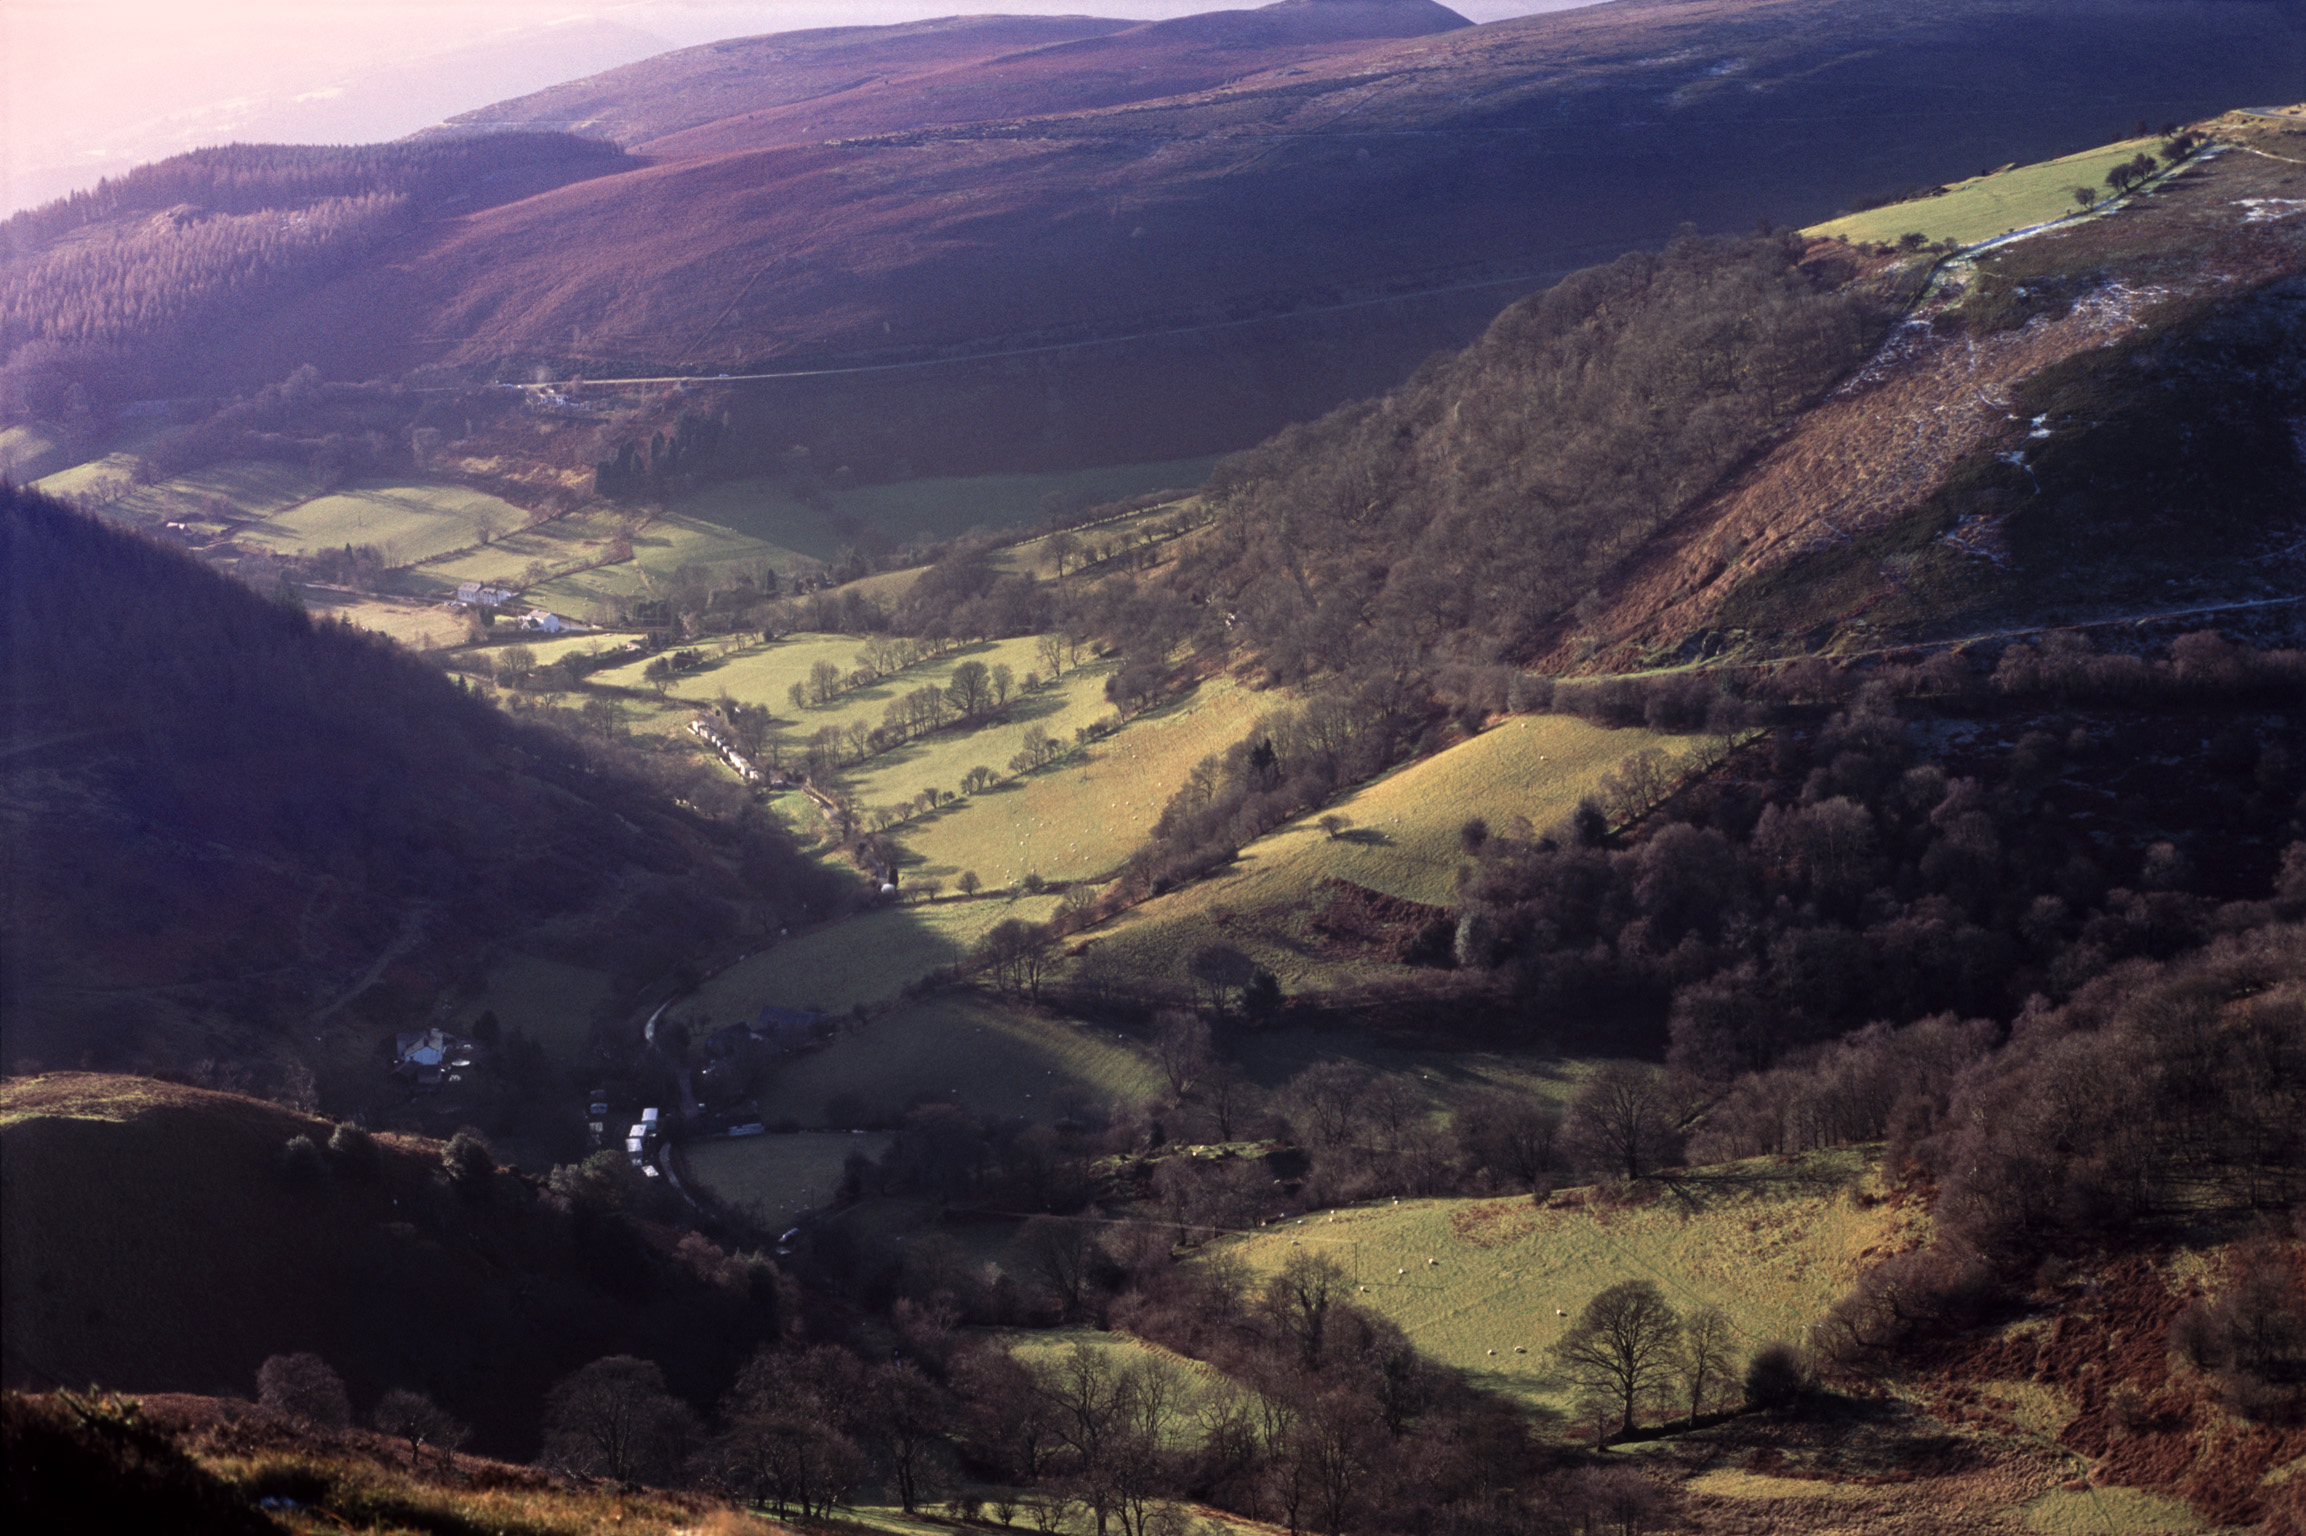 spectacular scenery of the north wales countryside